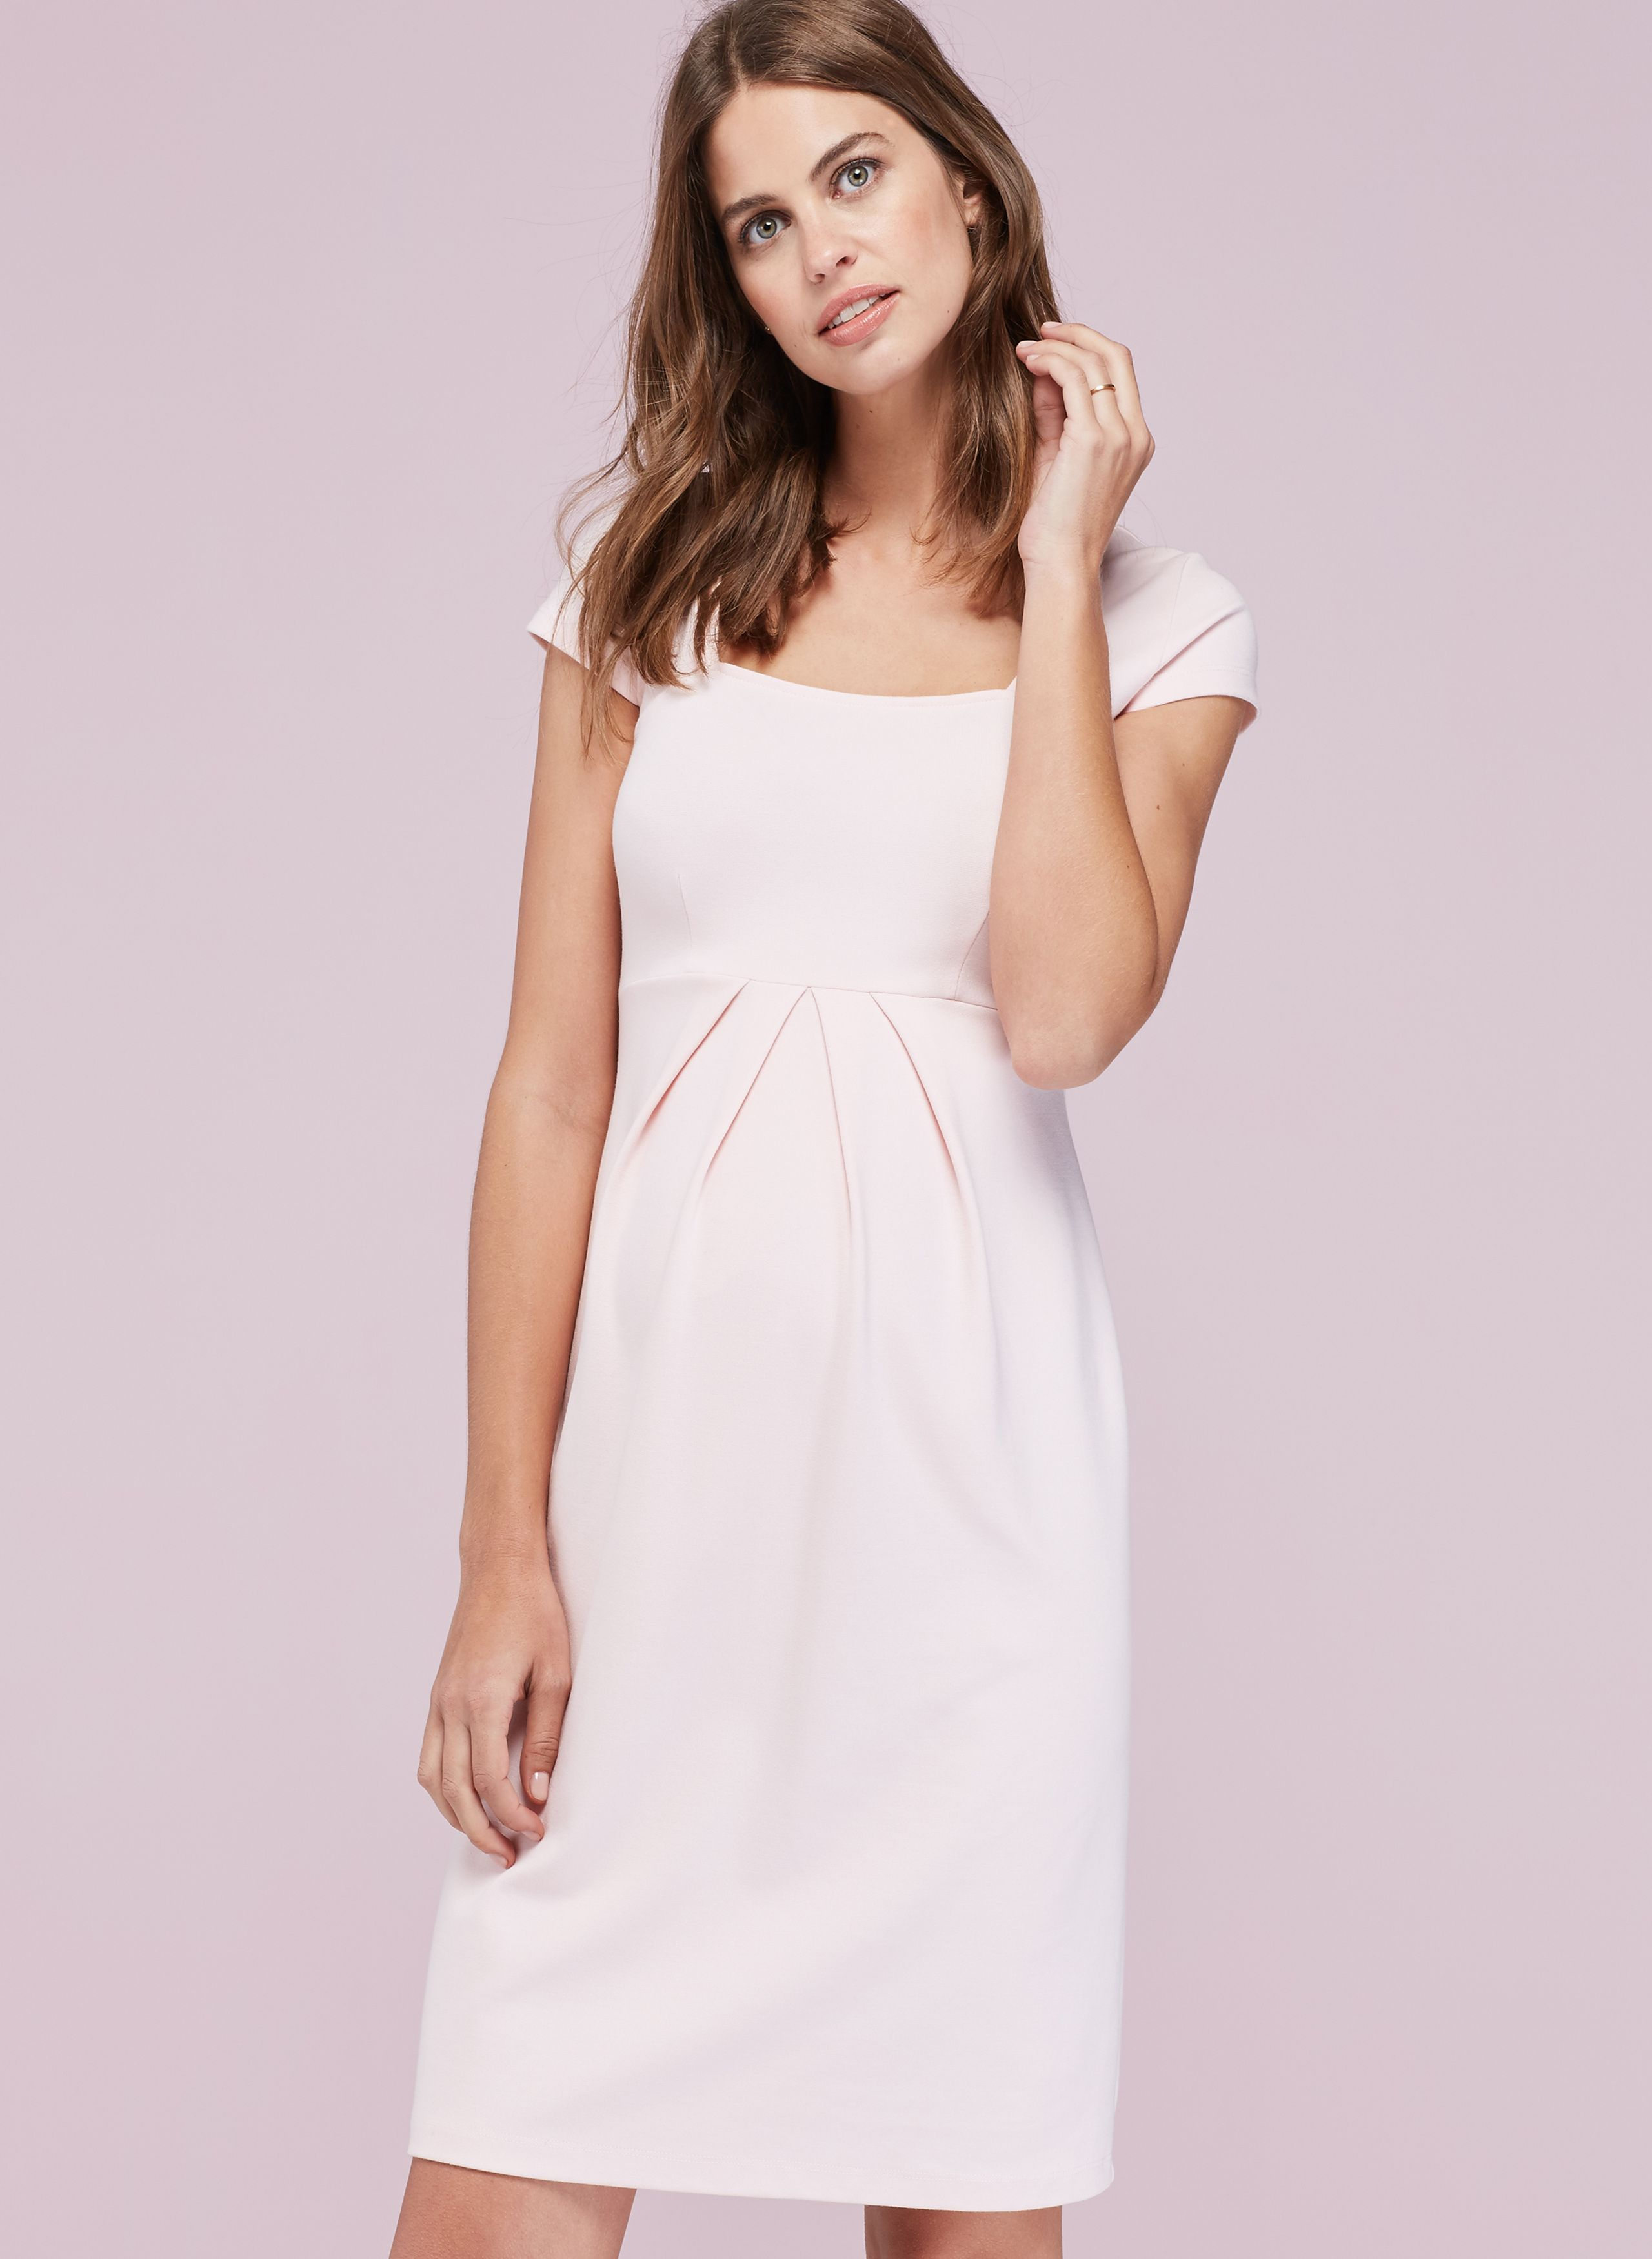 e0cc520c663c7 Farah Maternity Shift Dress in Pink at Isabella Oliver. Shop our luxury  collection today for stylish, premium quality maternity clothes that will  last.